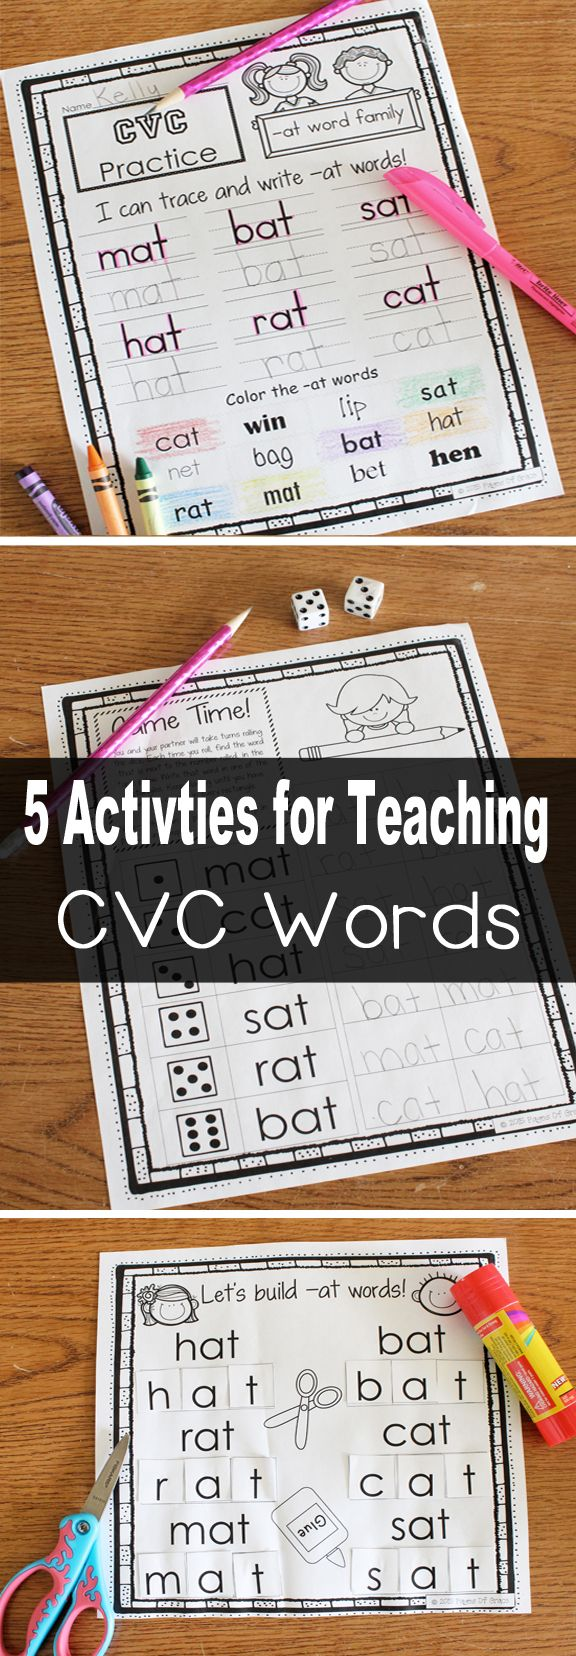 Do you need some fun activities for teaching CVC words? Check out this NO PREP  packet with 5 activities each for 23 short vowel CVC word families. There are 3 worksheets for each word family, which include tracing the words with highlighters, writing the words, identifying and coloring the words, cut and glue, and a dice game. This packet is great to use during literacy centers and is appropriate for pre-k, kindergarten, and first grade. My kids love to practice phonics with this CVC…